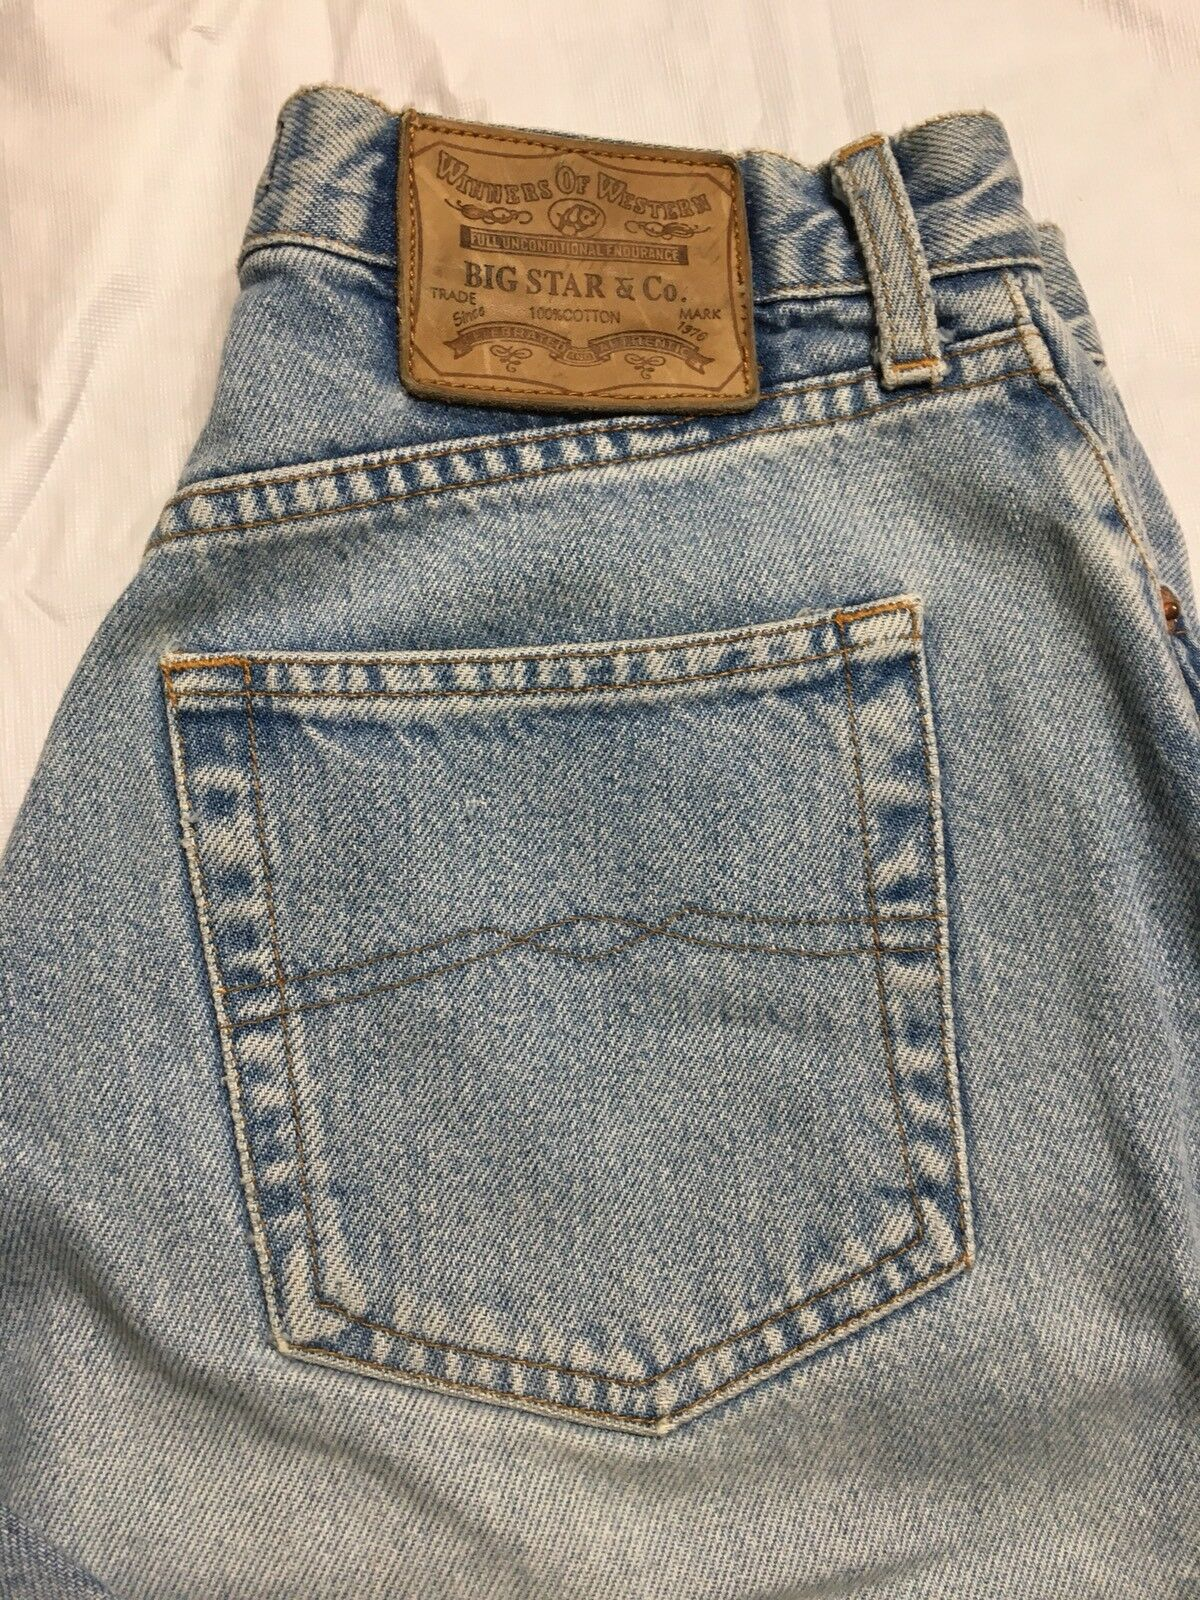 Vtg Big Star Frisco Jeans Size 27 x 29 Light Wash Button Fly Tapered Leg